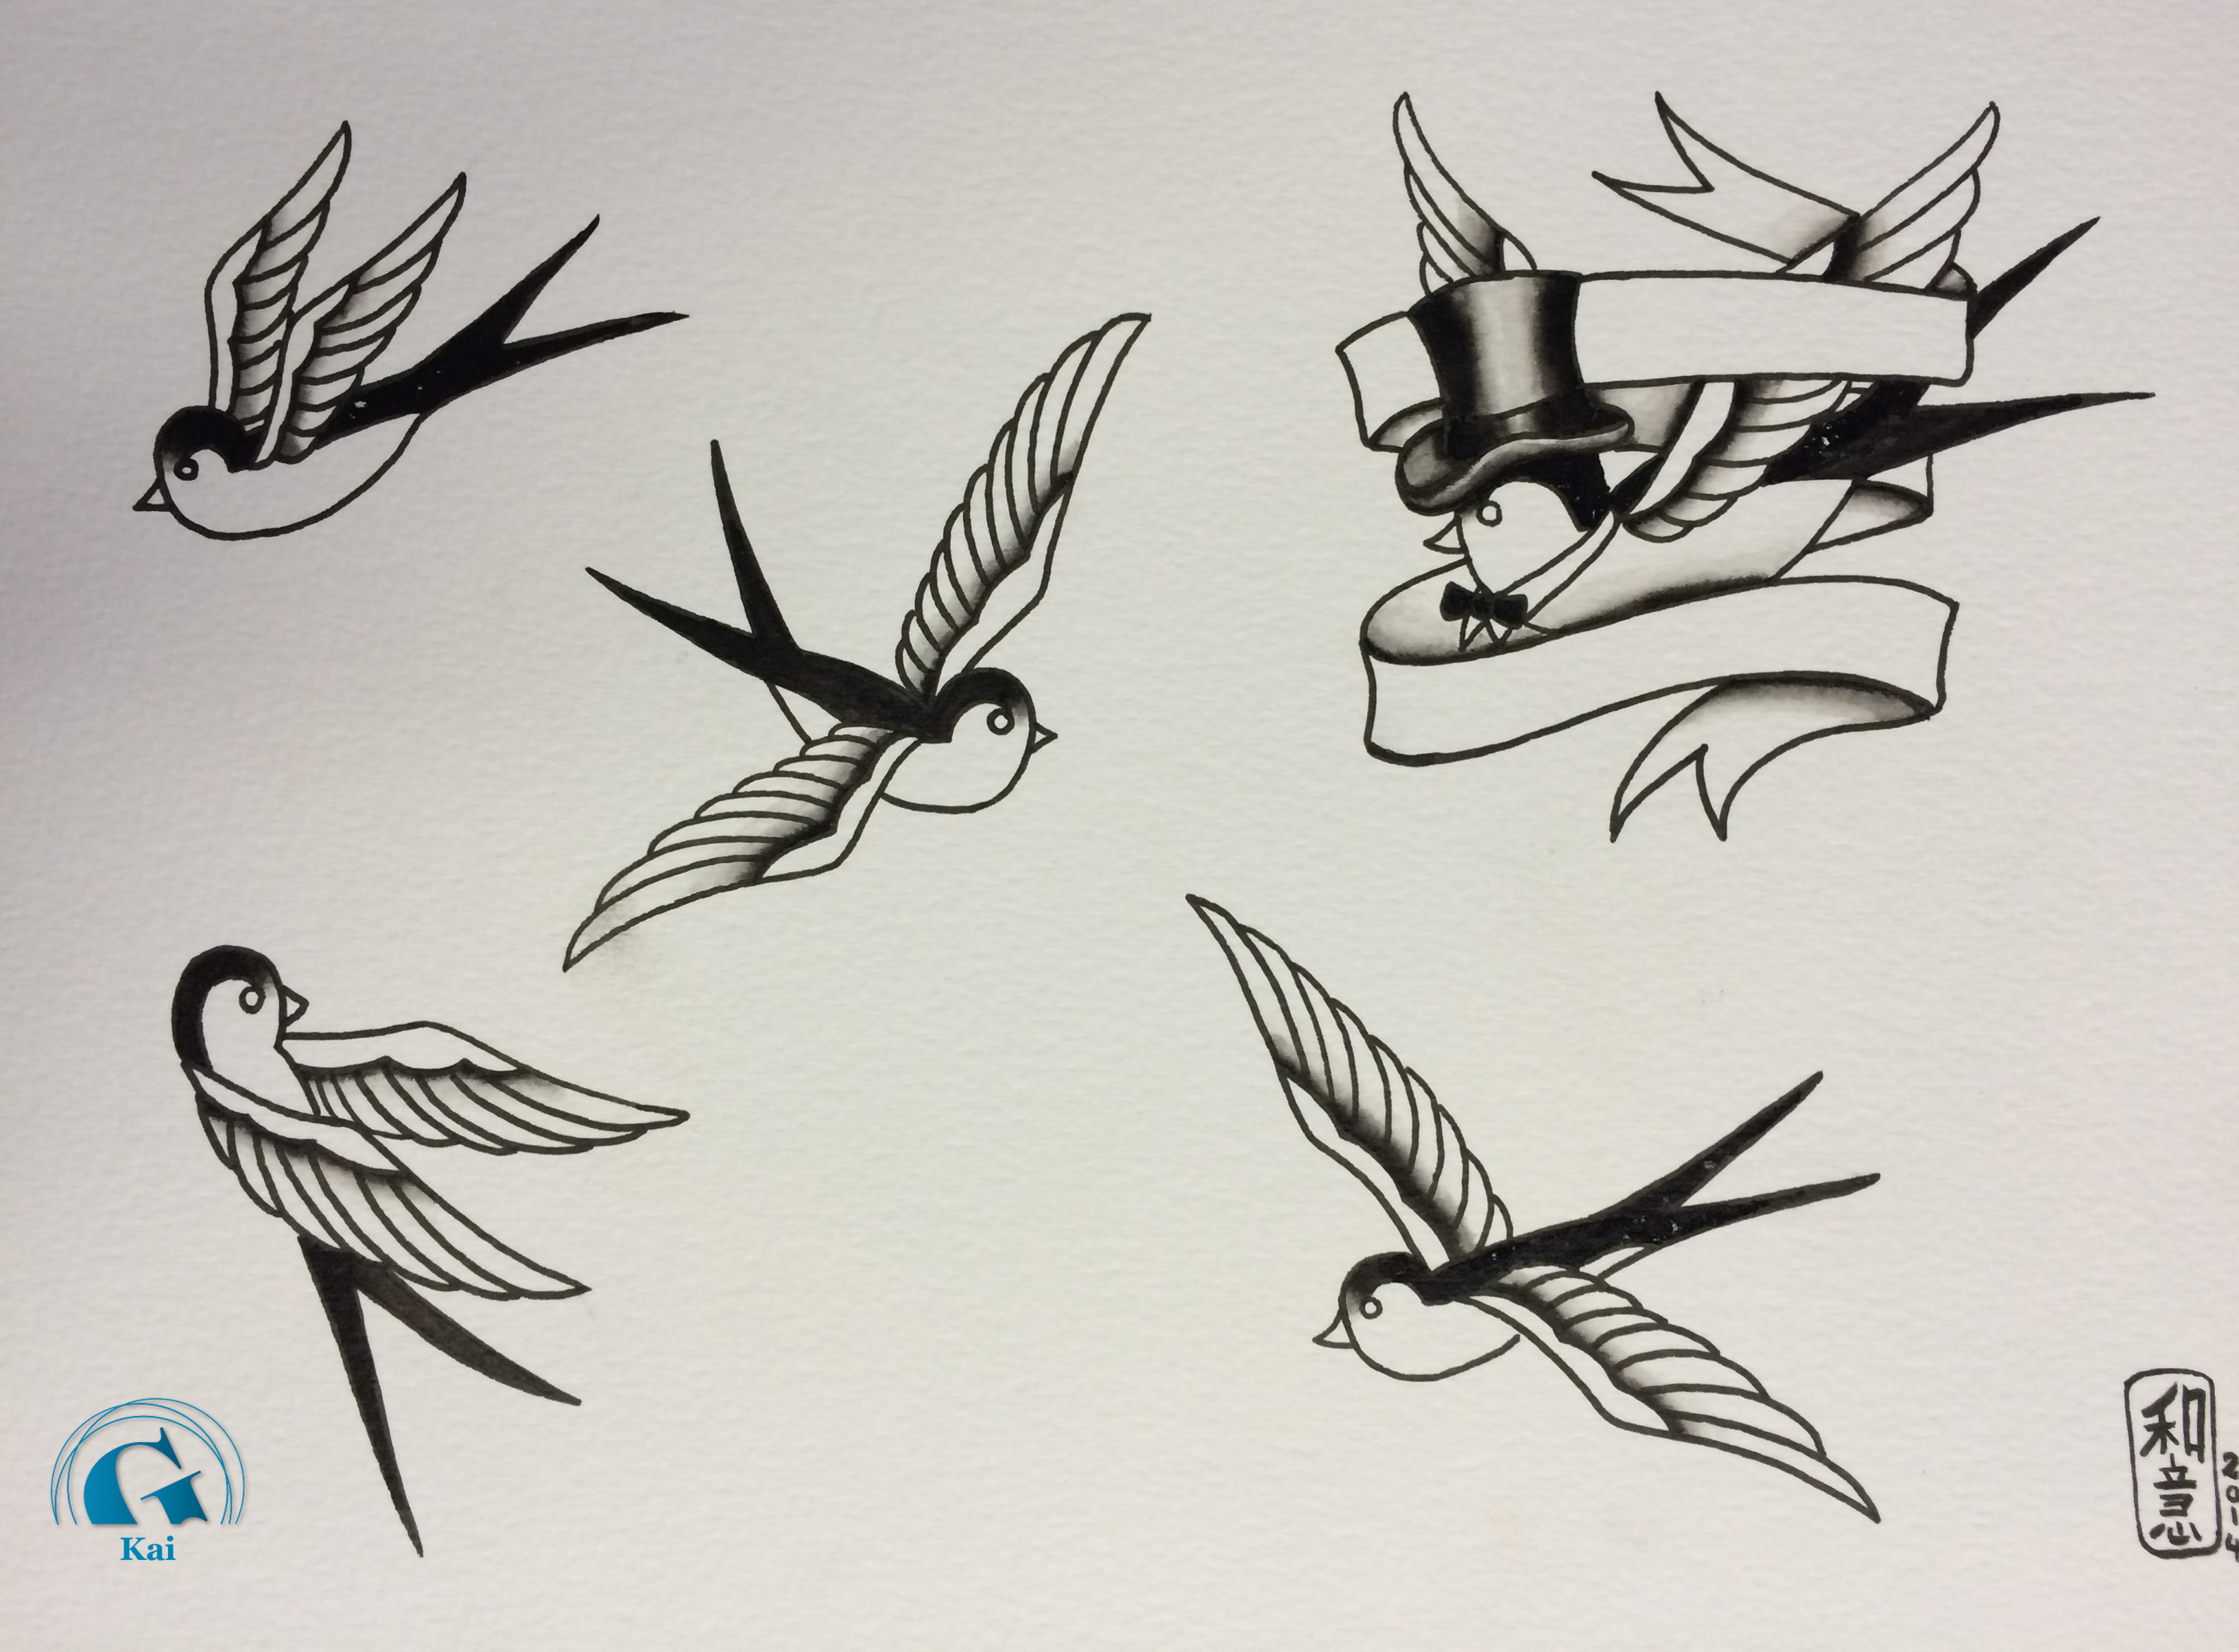 Tatouage hirondelle old tattoo pictures to pin on pinterest - Tatouage hirondelle signification ...